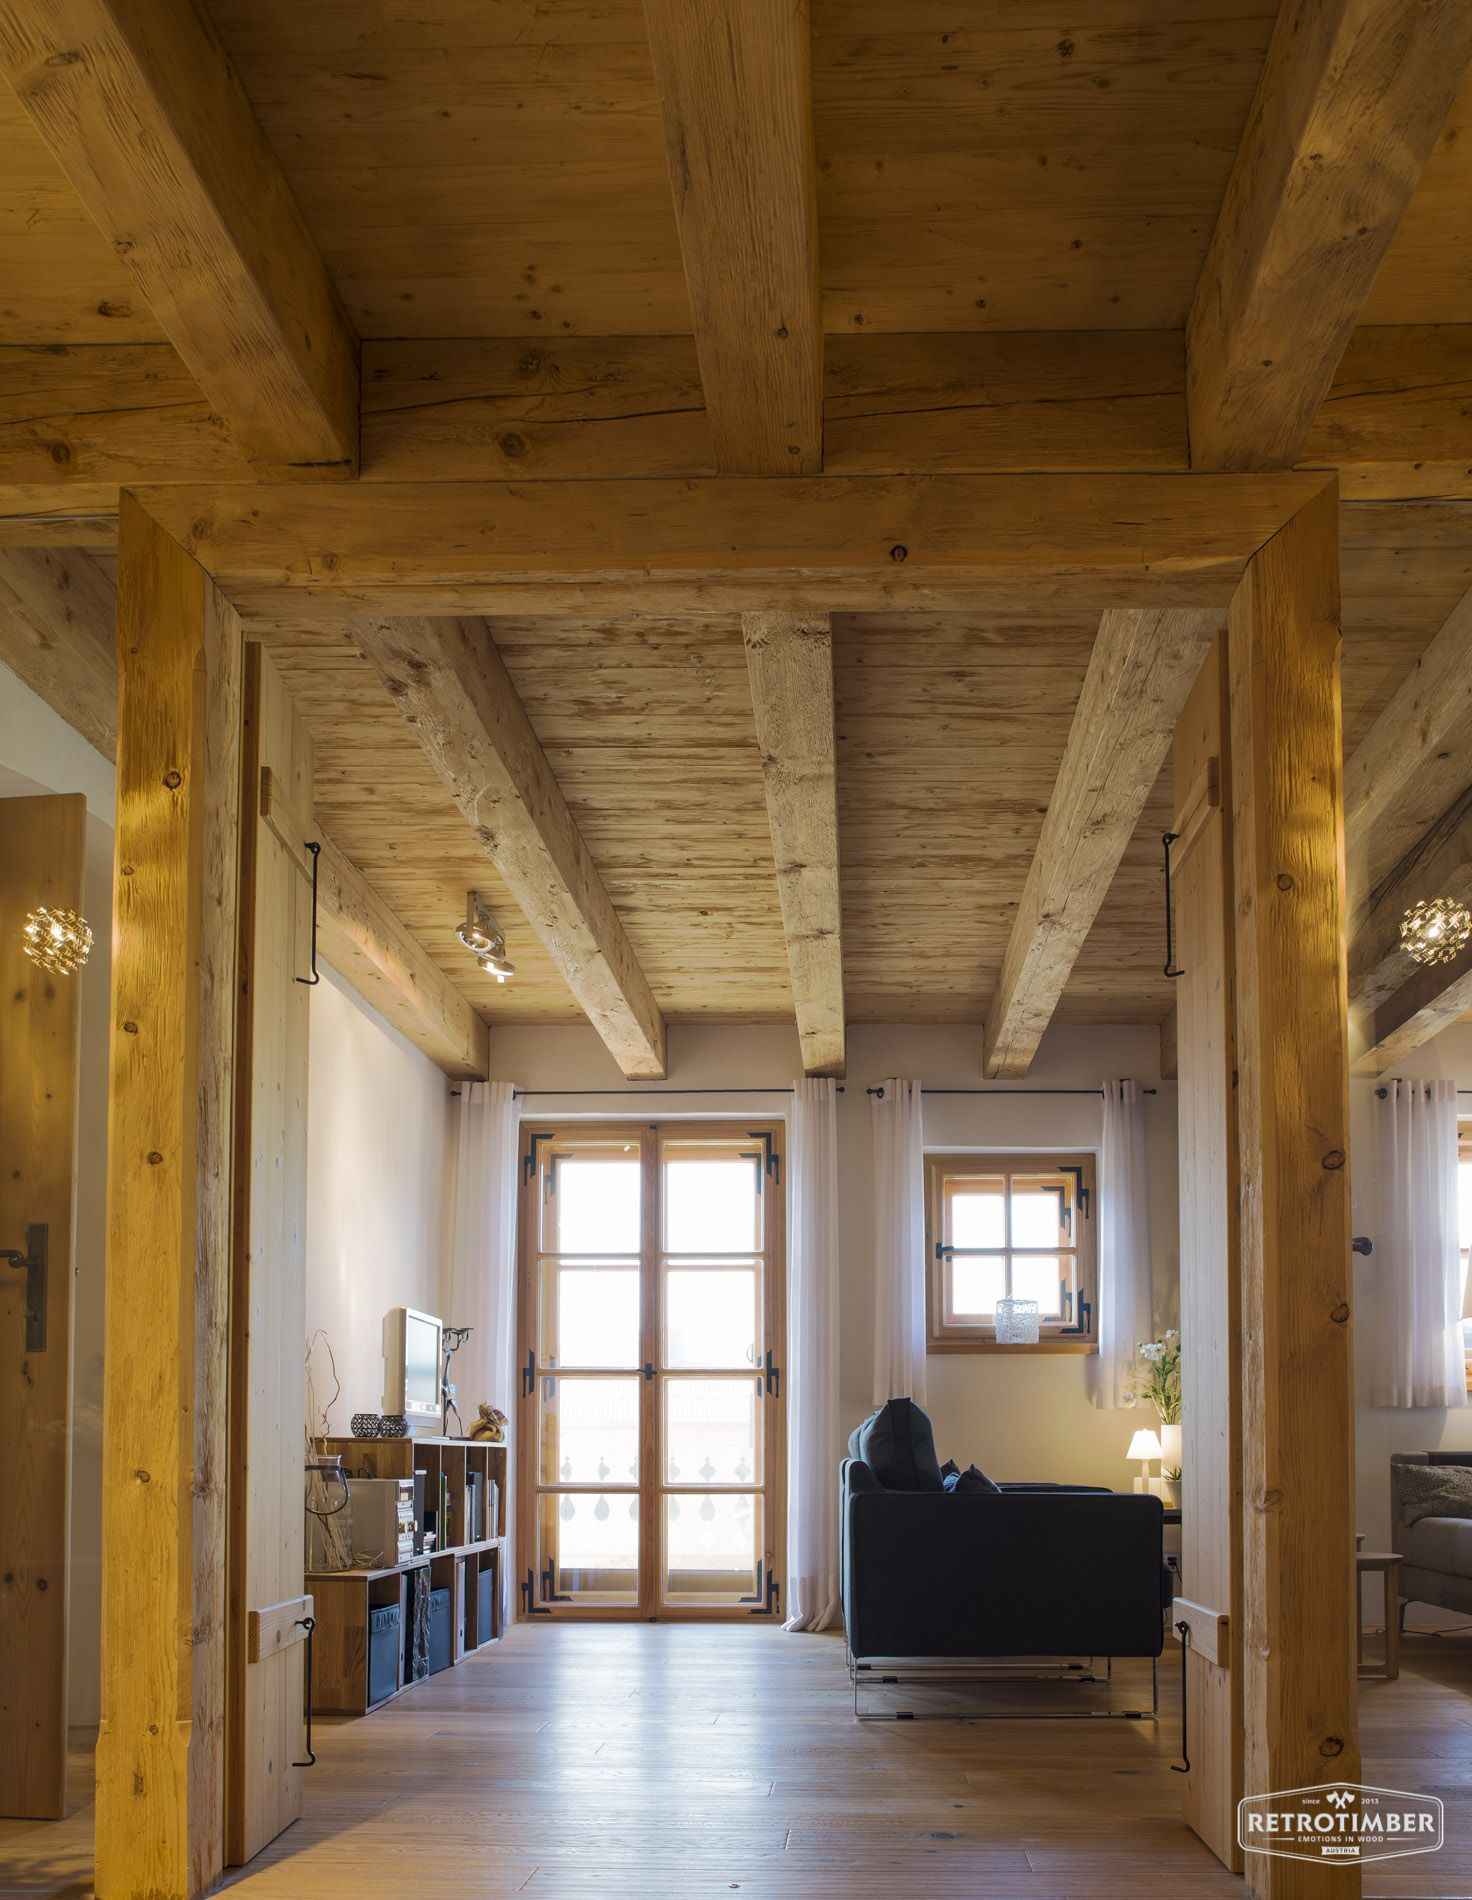 Retrotimber | Altholz, Balken, Hausbau, Bau, Fichte, Lärche, Landhausstil,